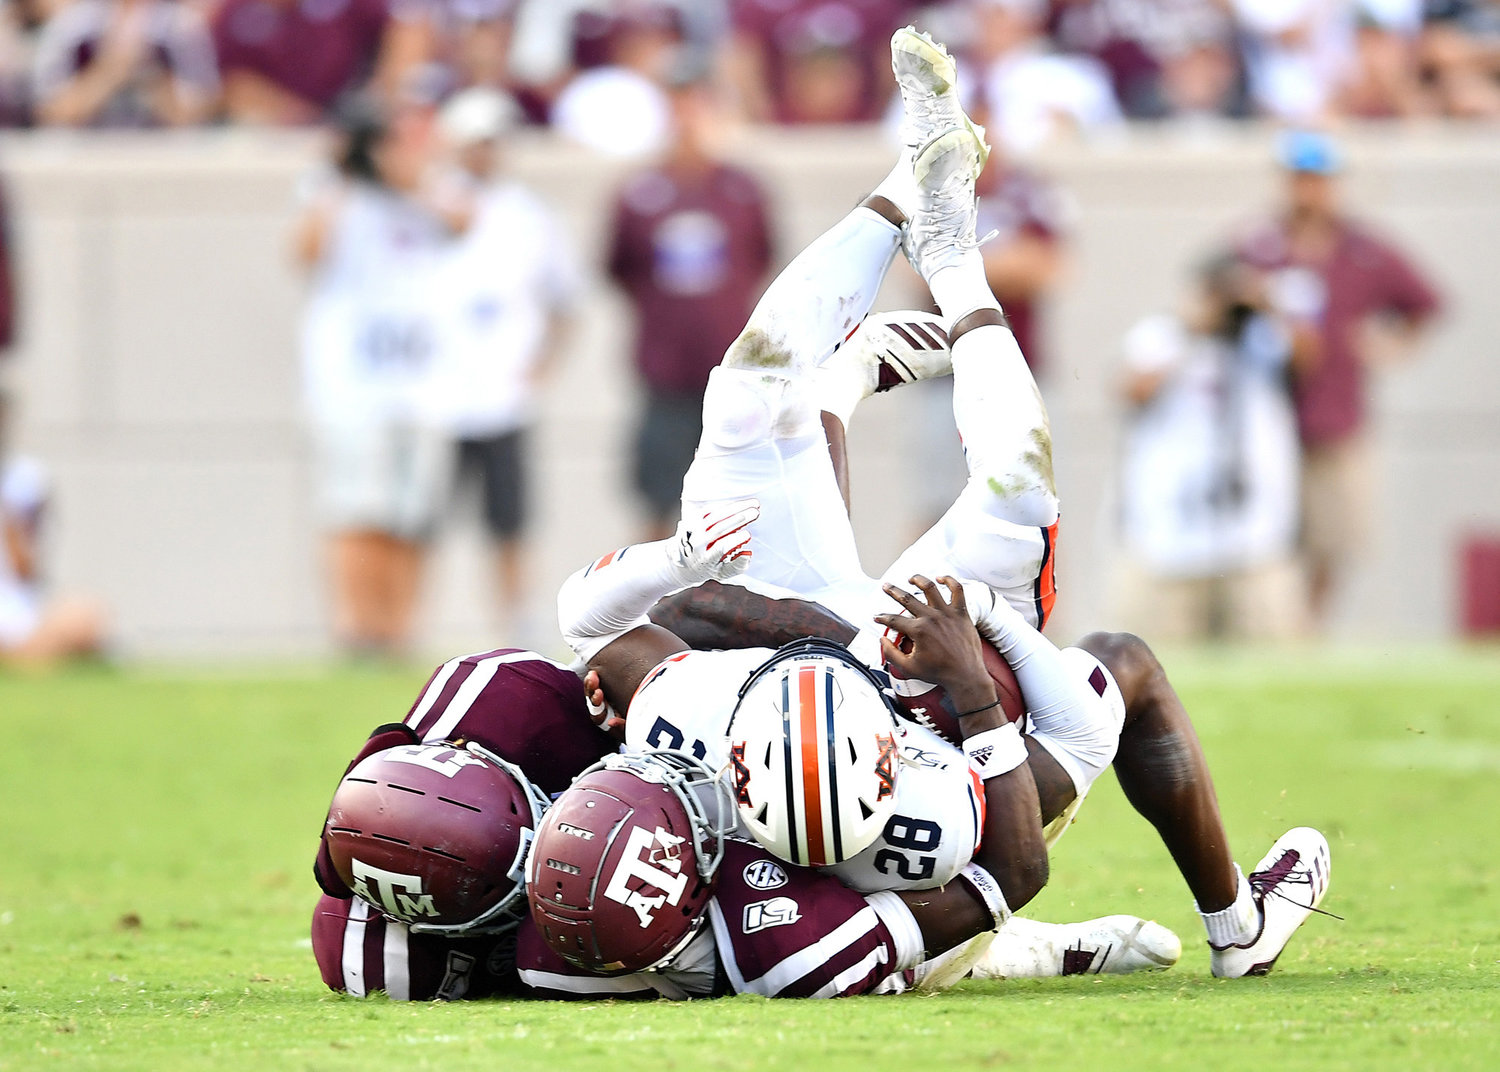 Auburn Tigers running back JaTarvious Whitlow (28) in action during the second half of an NCAA football game against the Texas A&M Aggies Saturday, Sept. 21, 2019, at Kyle Field in College Station Texas. Auburn wins 28-20.